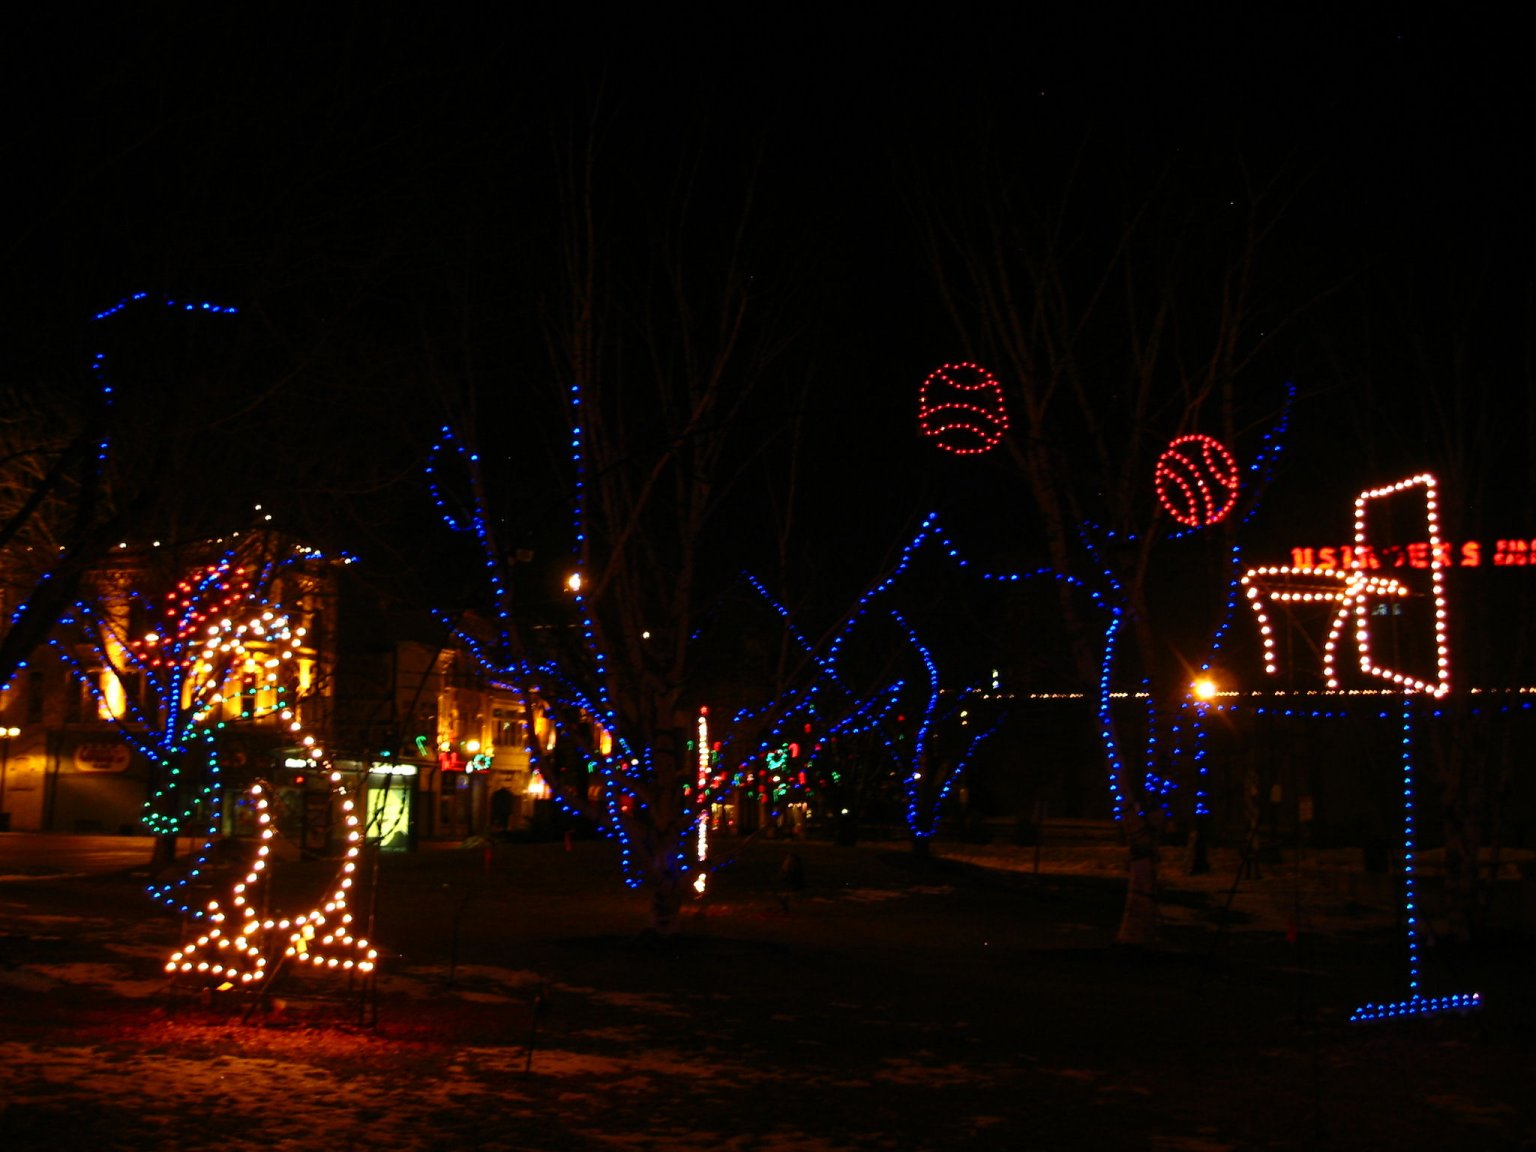 Milwaukee Holiday Lights on Christmas Day - Dec 25, 2007 - photo by Mike Fisk -- soul-amp.com